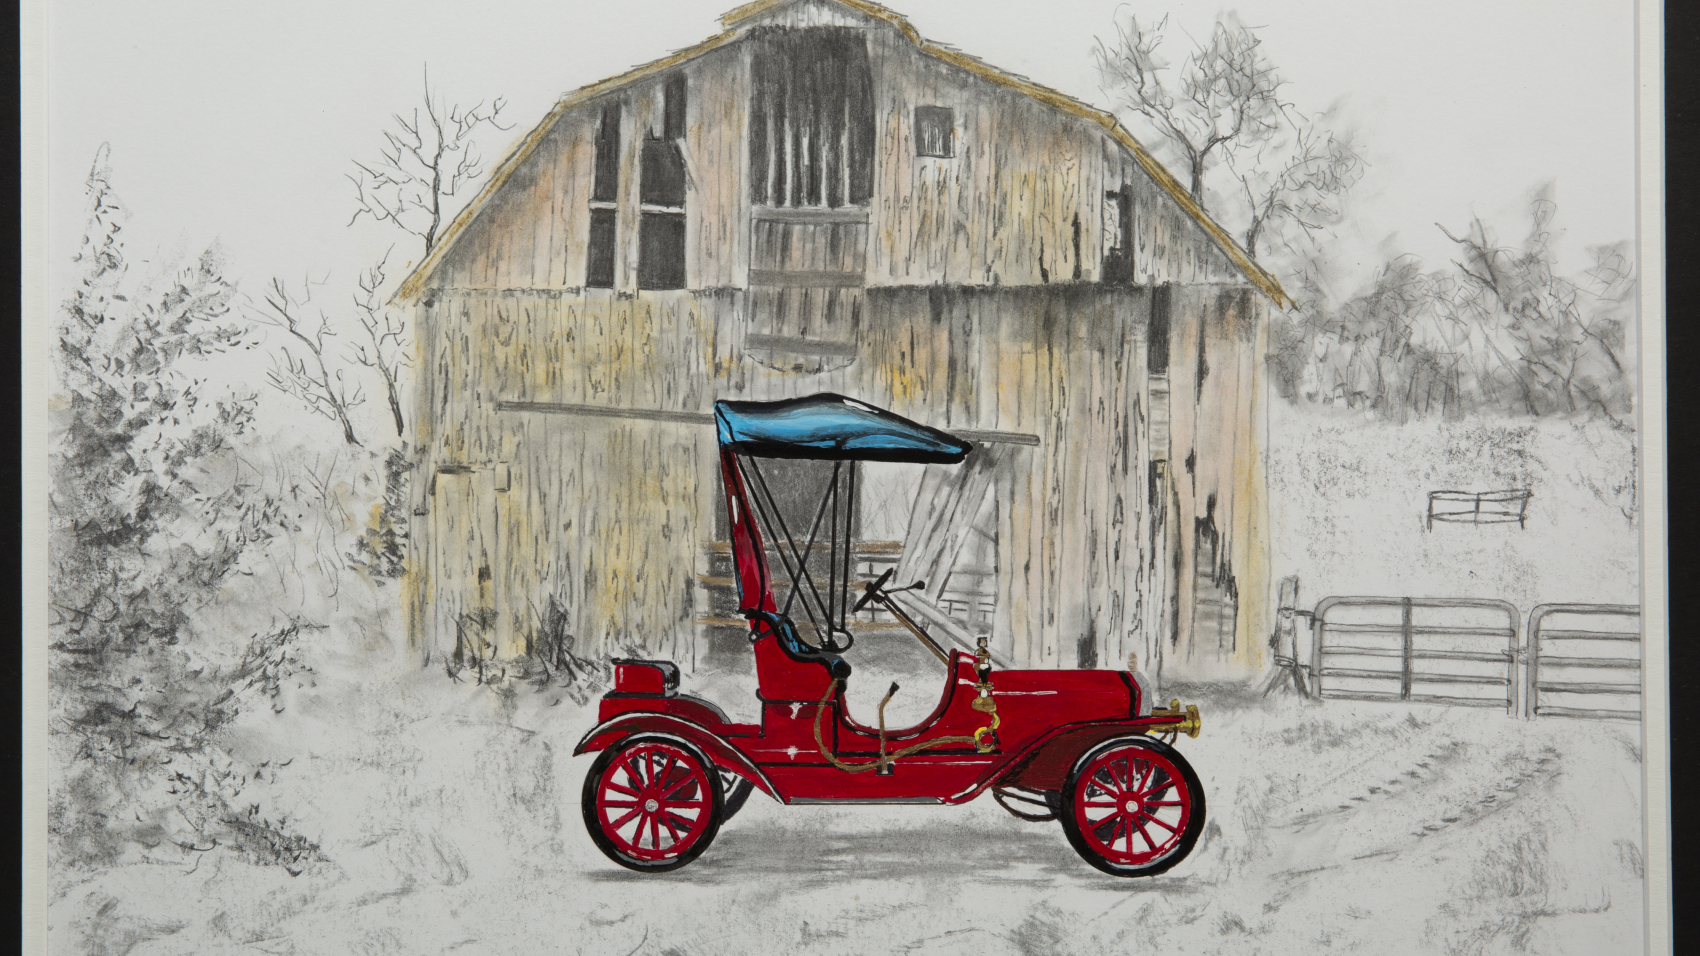 Painting - Oldtimers Car and Barn - painting of a red vintage car with blue fabric top parked in front of an old barn.